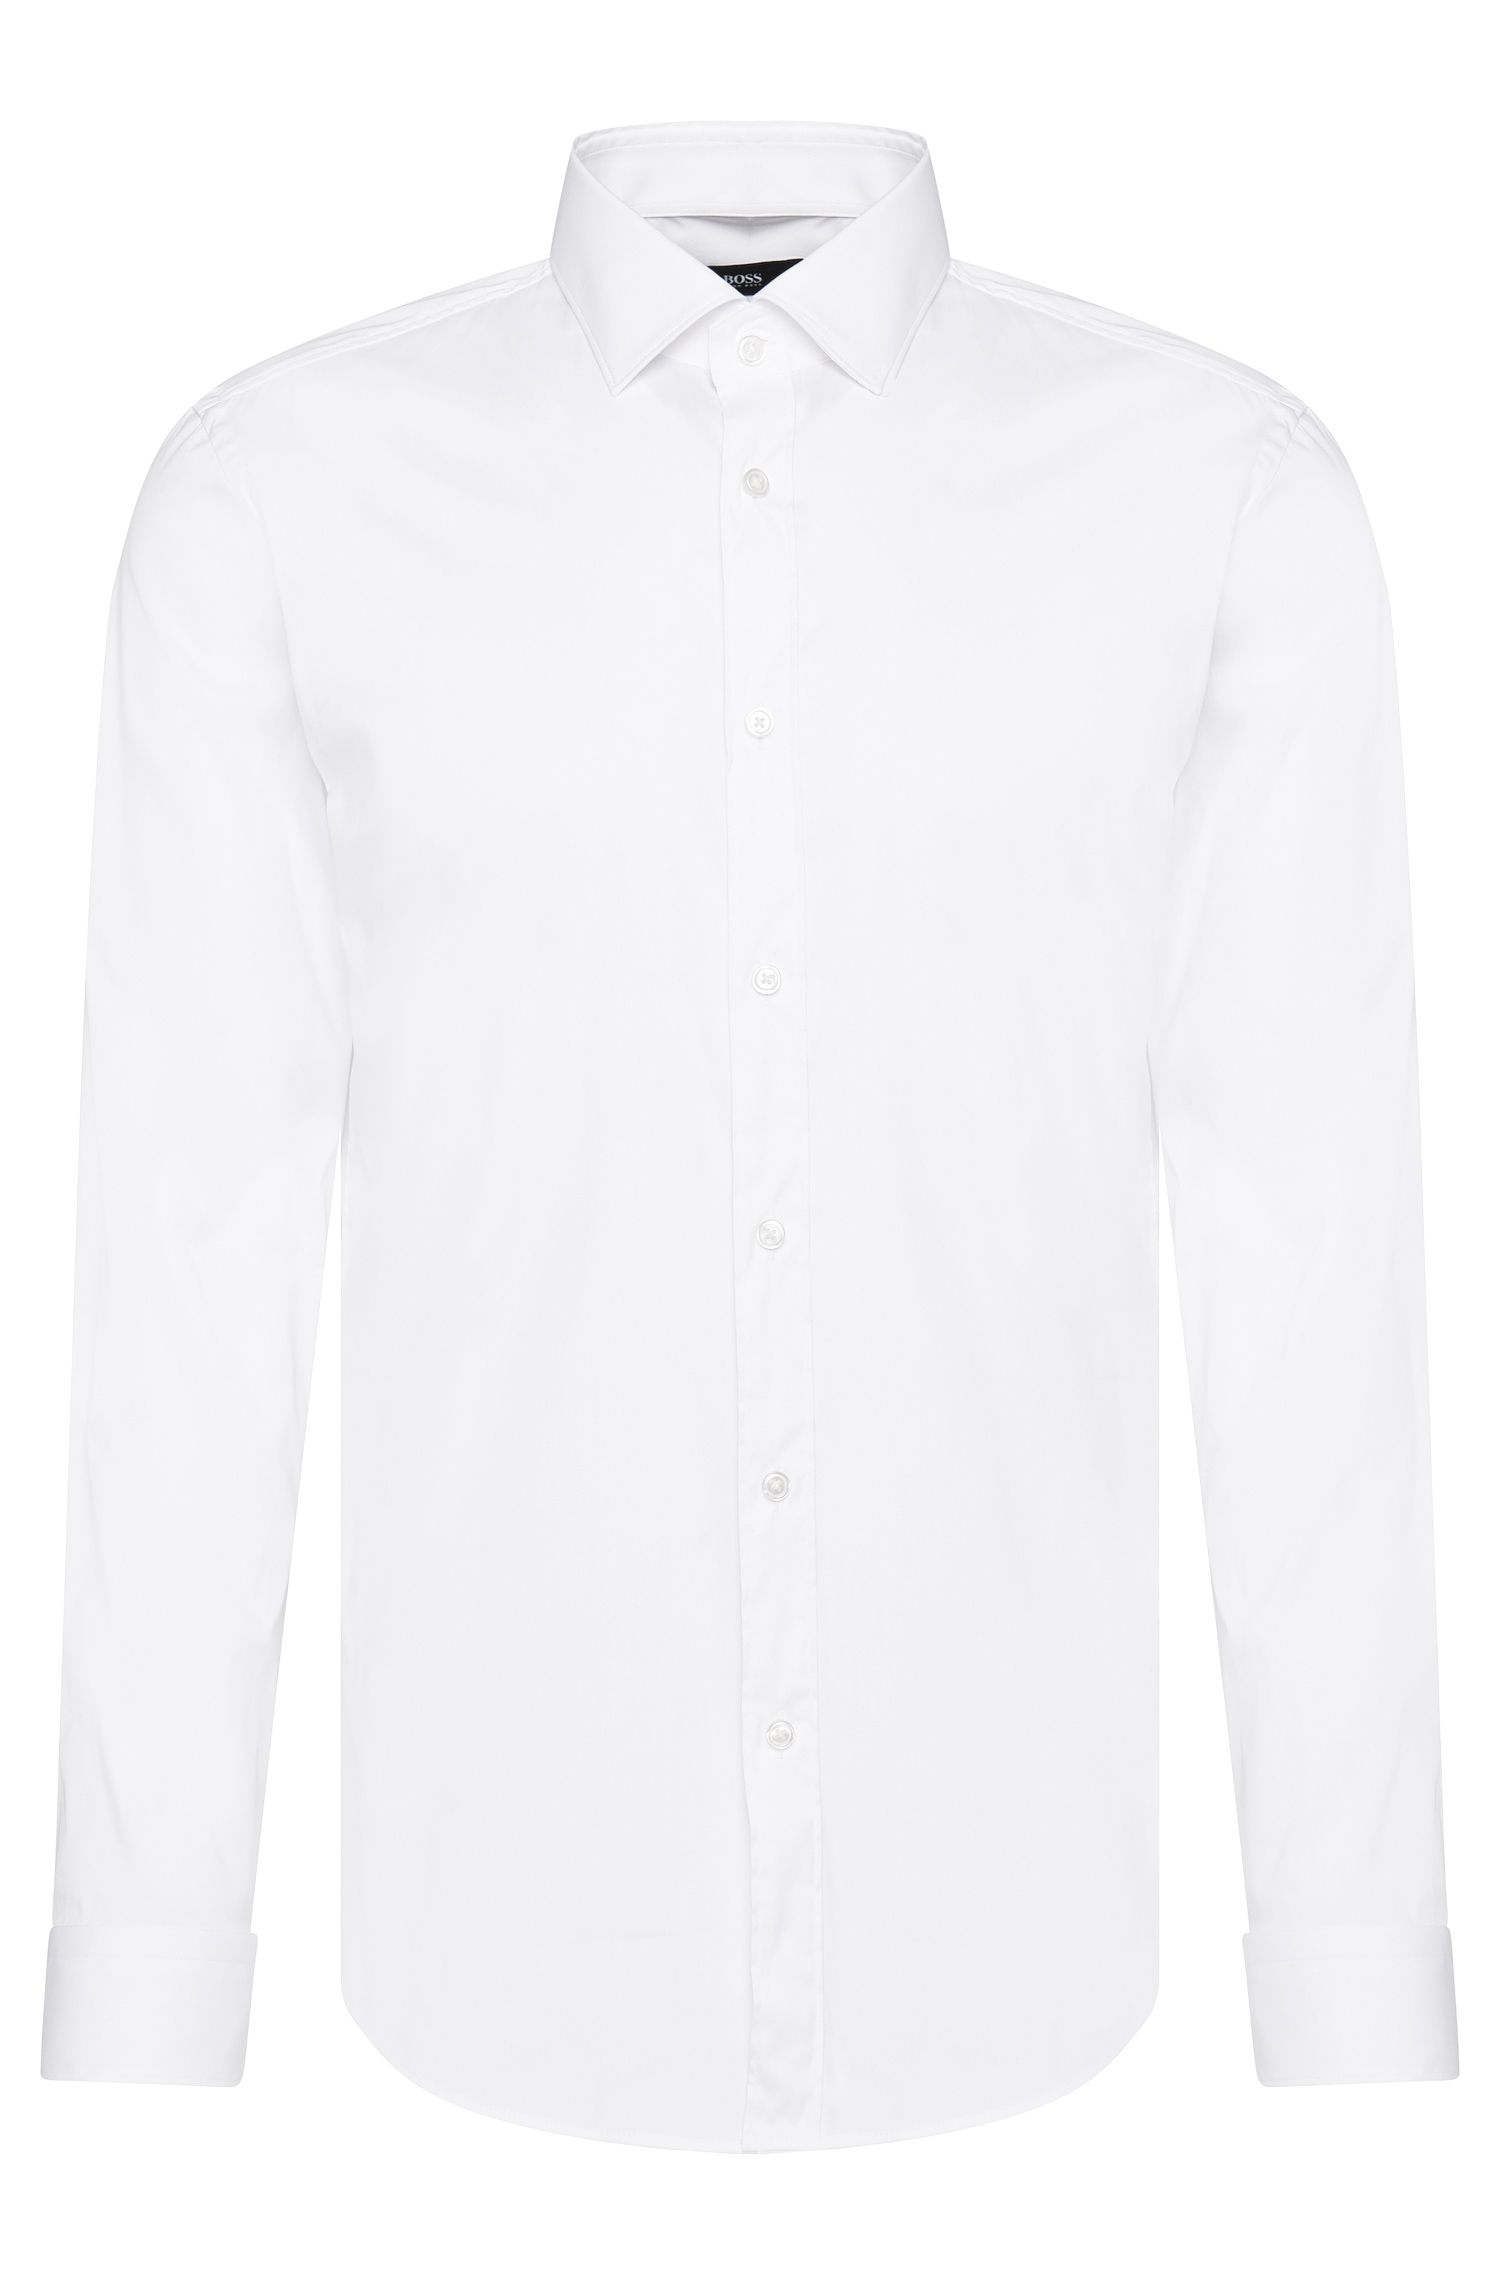 'Isaak' | Slim Fit, Stretch Cotton Blend Dress Shirt